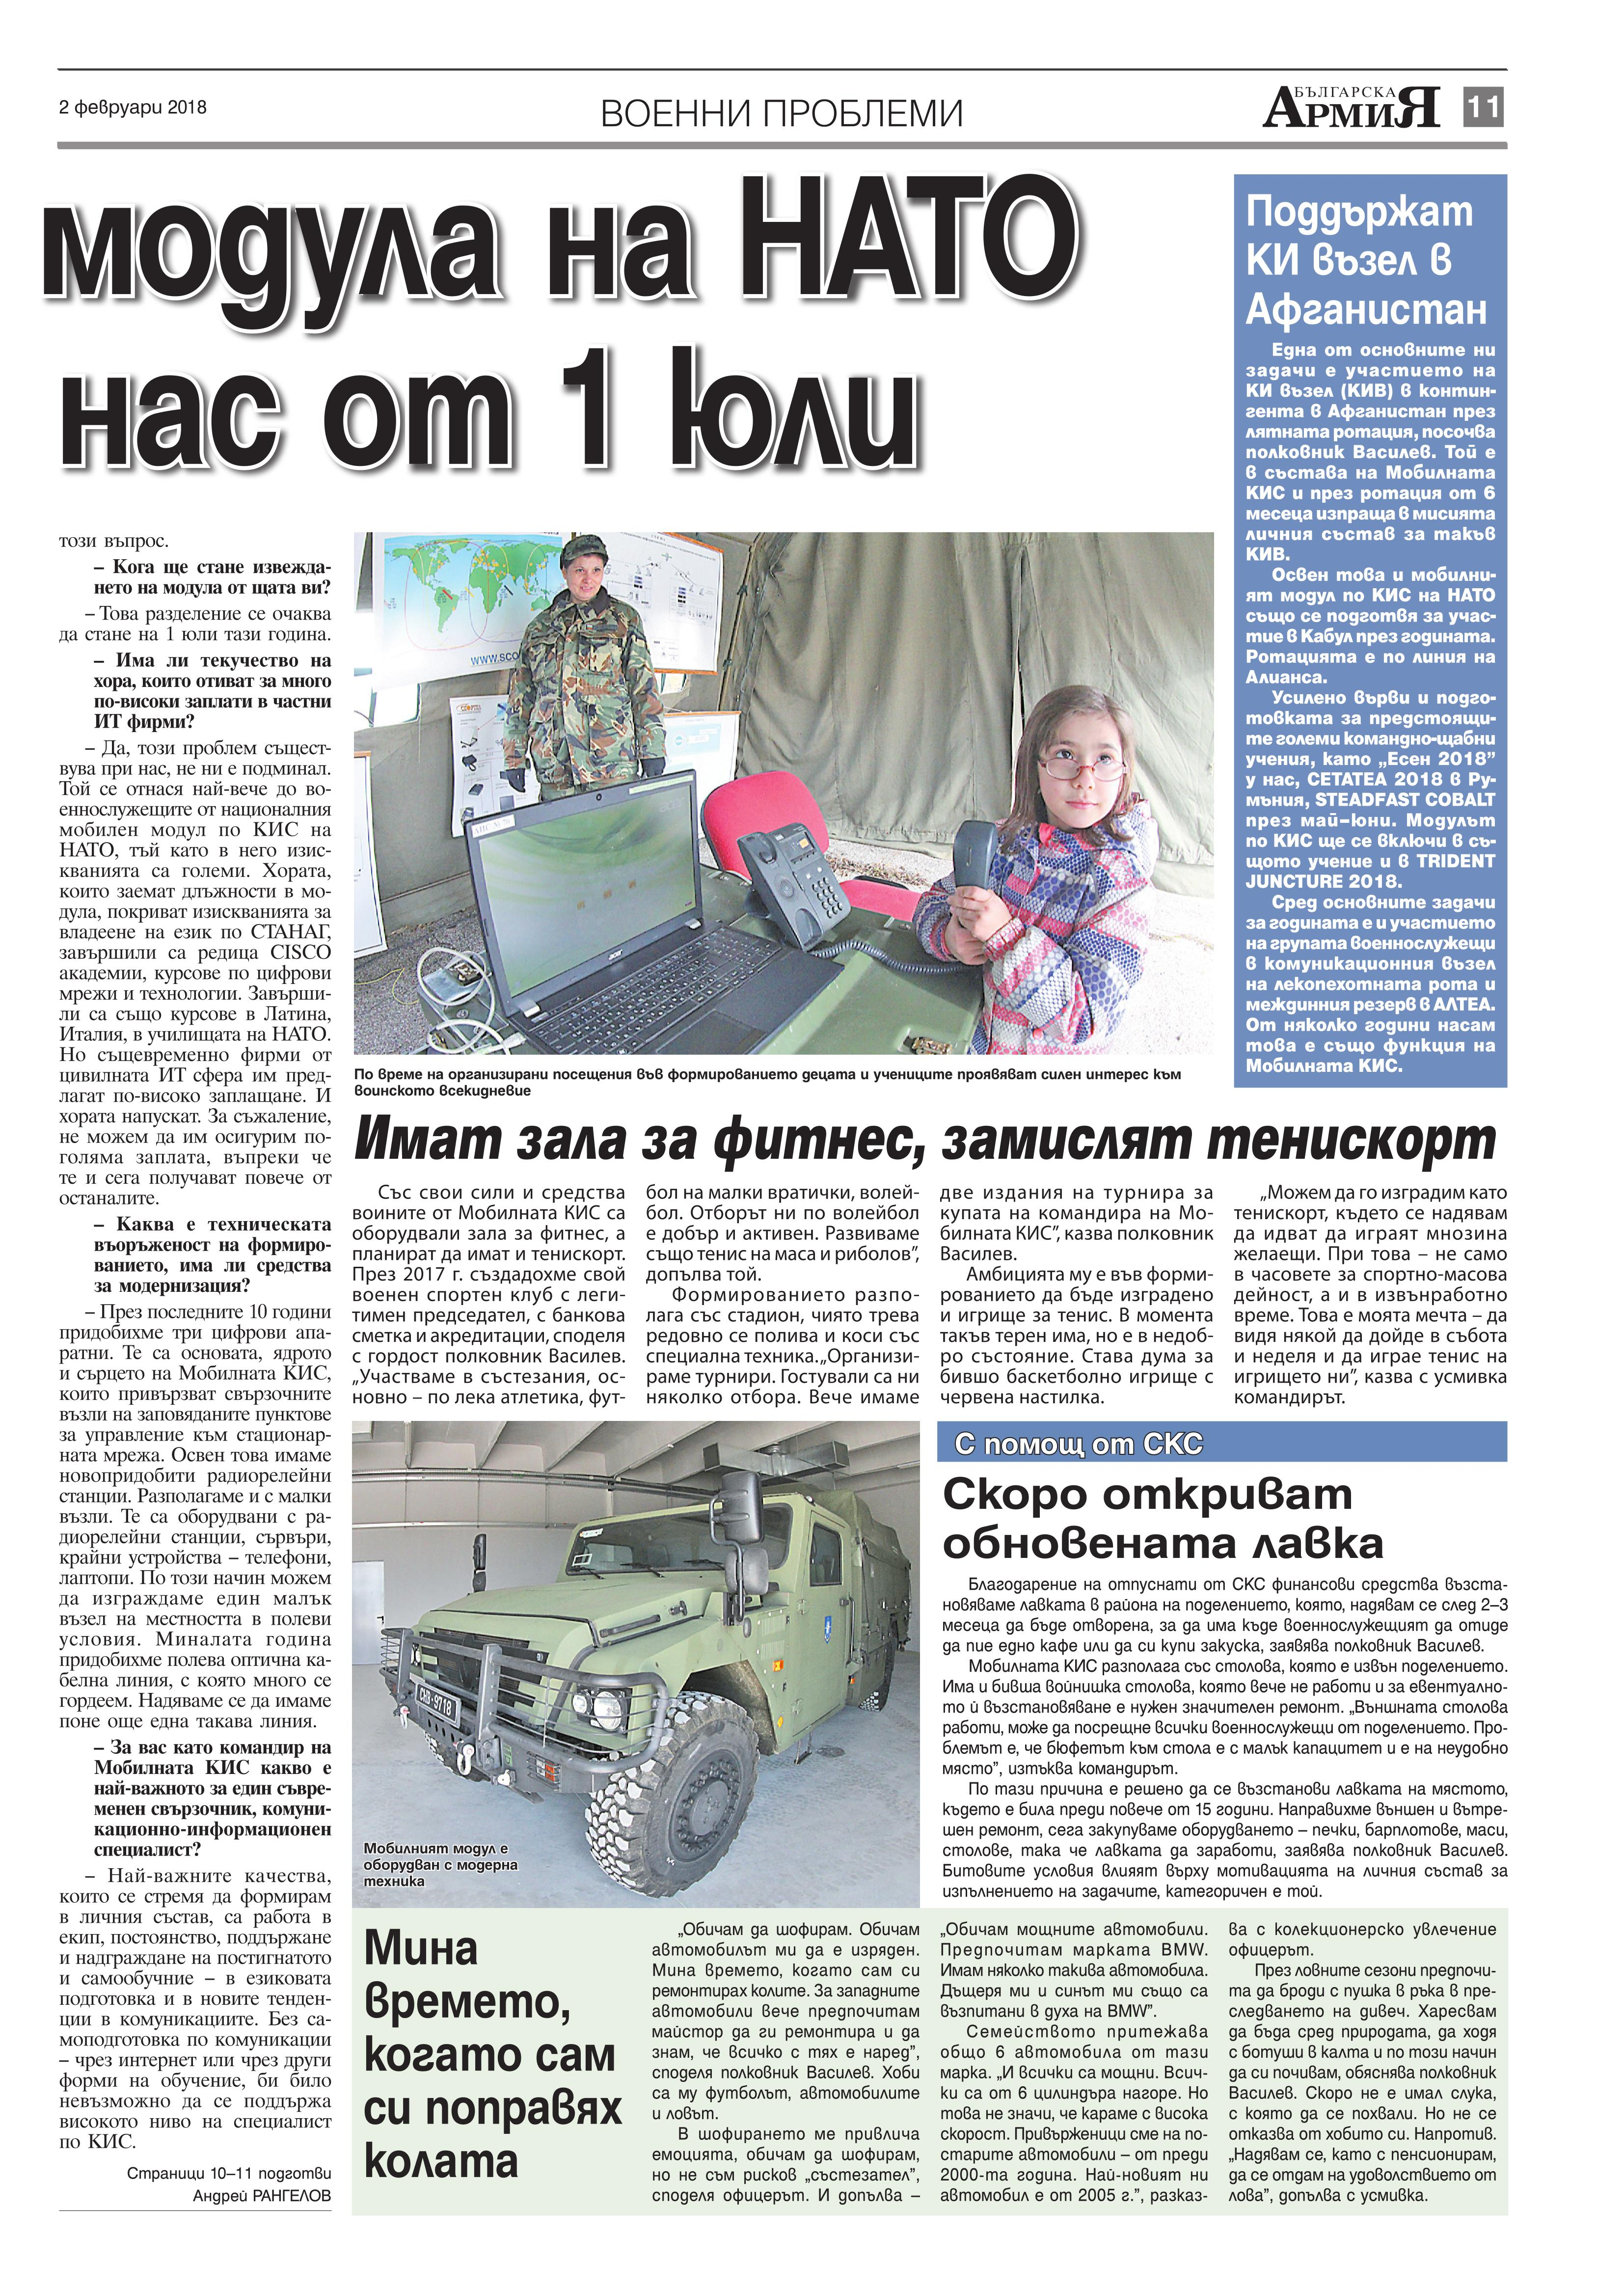 https://armymedia.bg/wp-content/uploads/2015/06/11.page1_-38.jpg